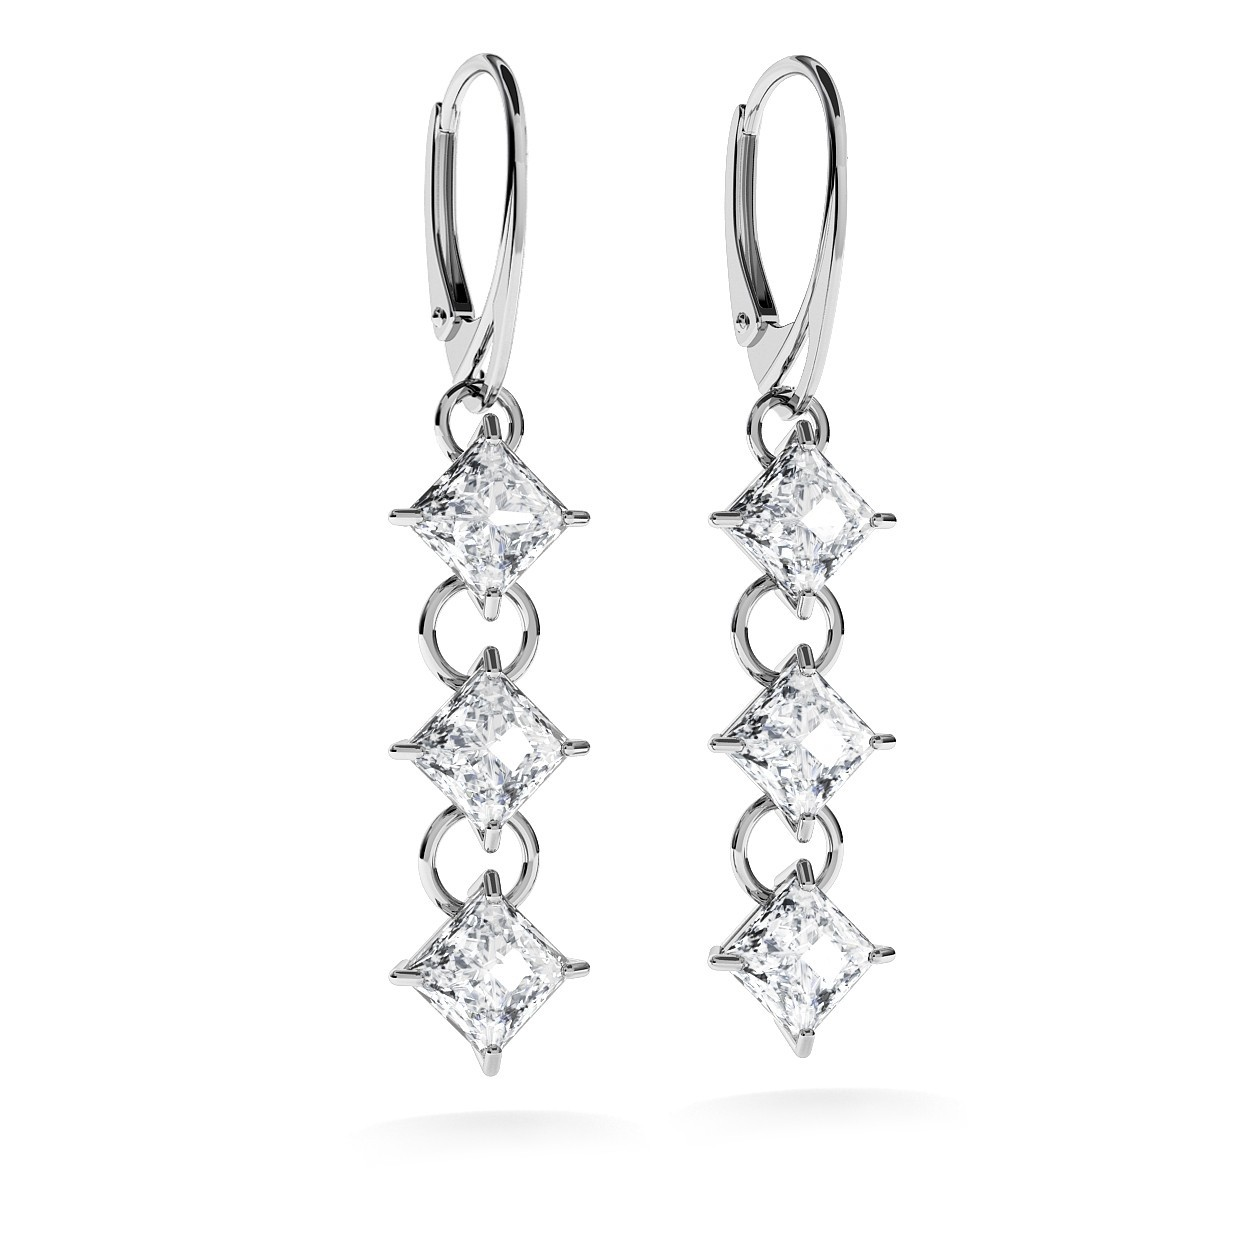 EARRINGS WITH ZIRCONS, WEDDING JEWELLERY - MODEL 1